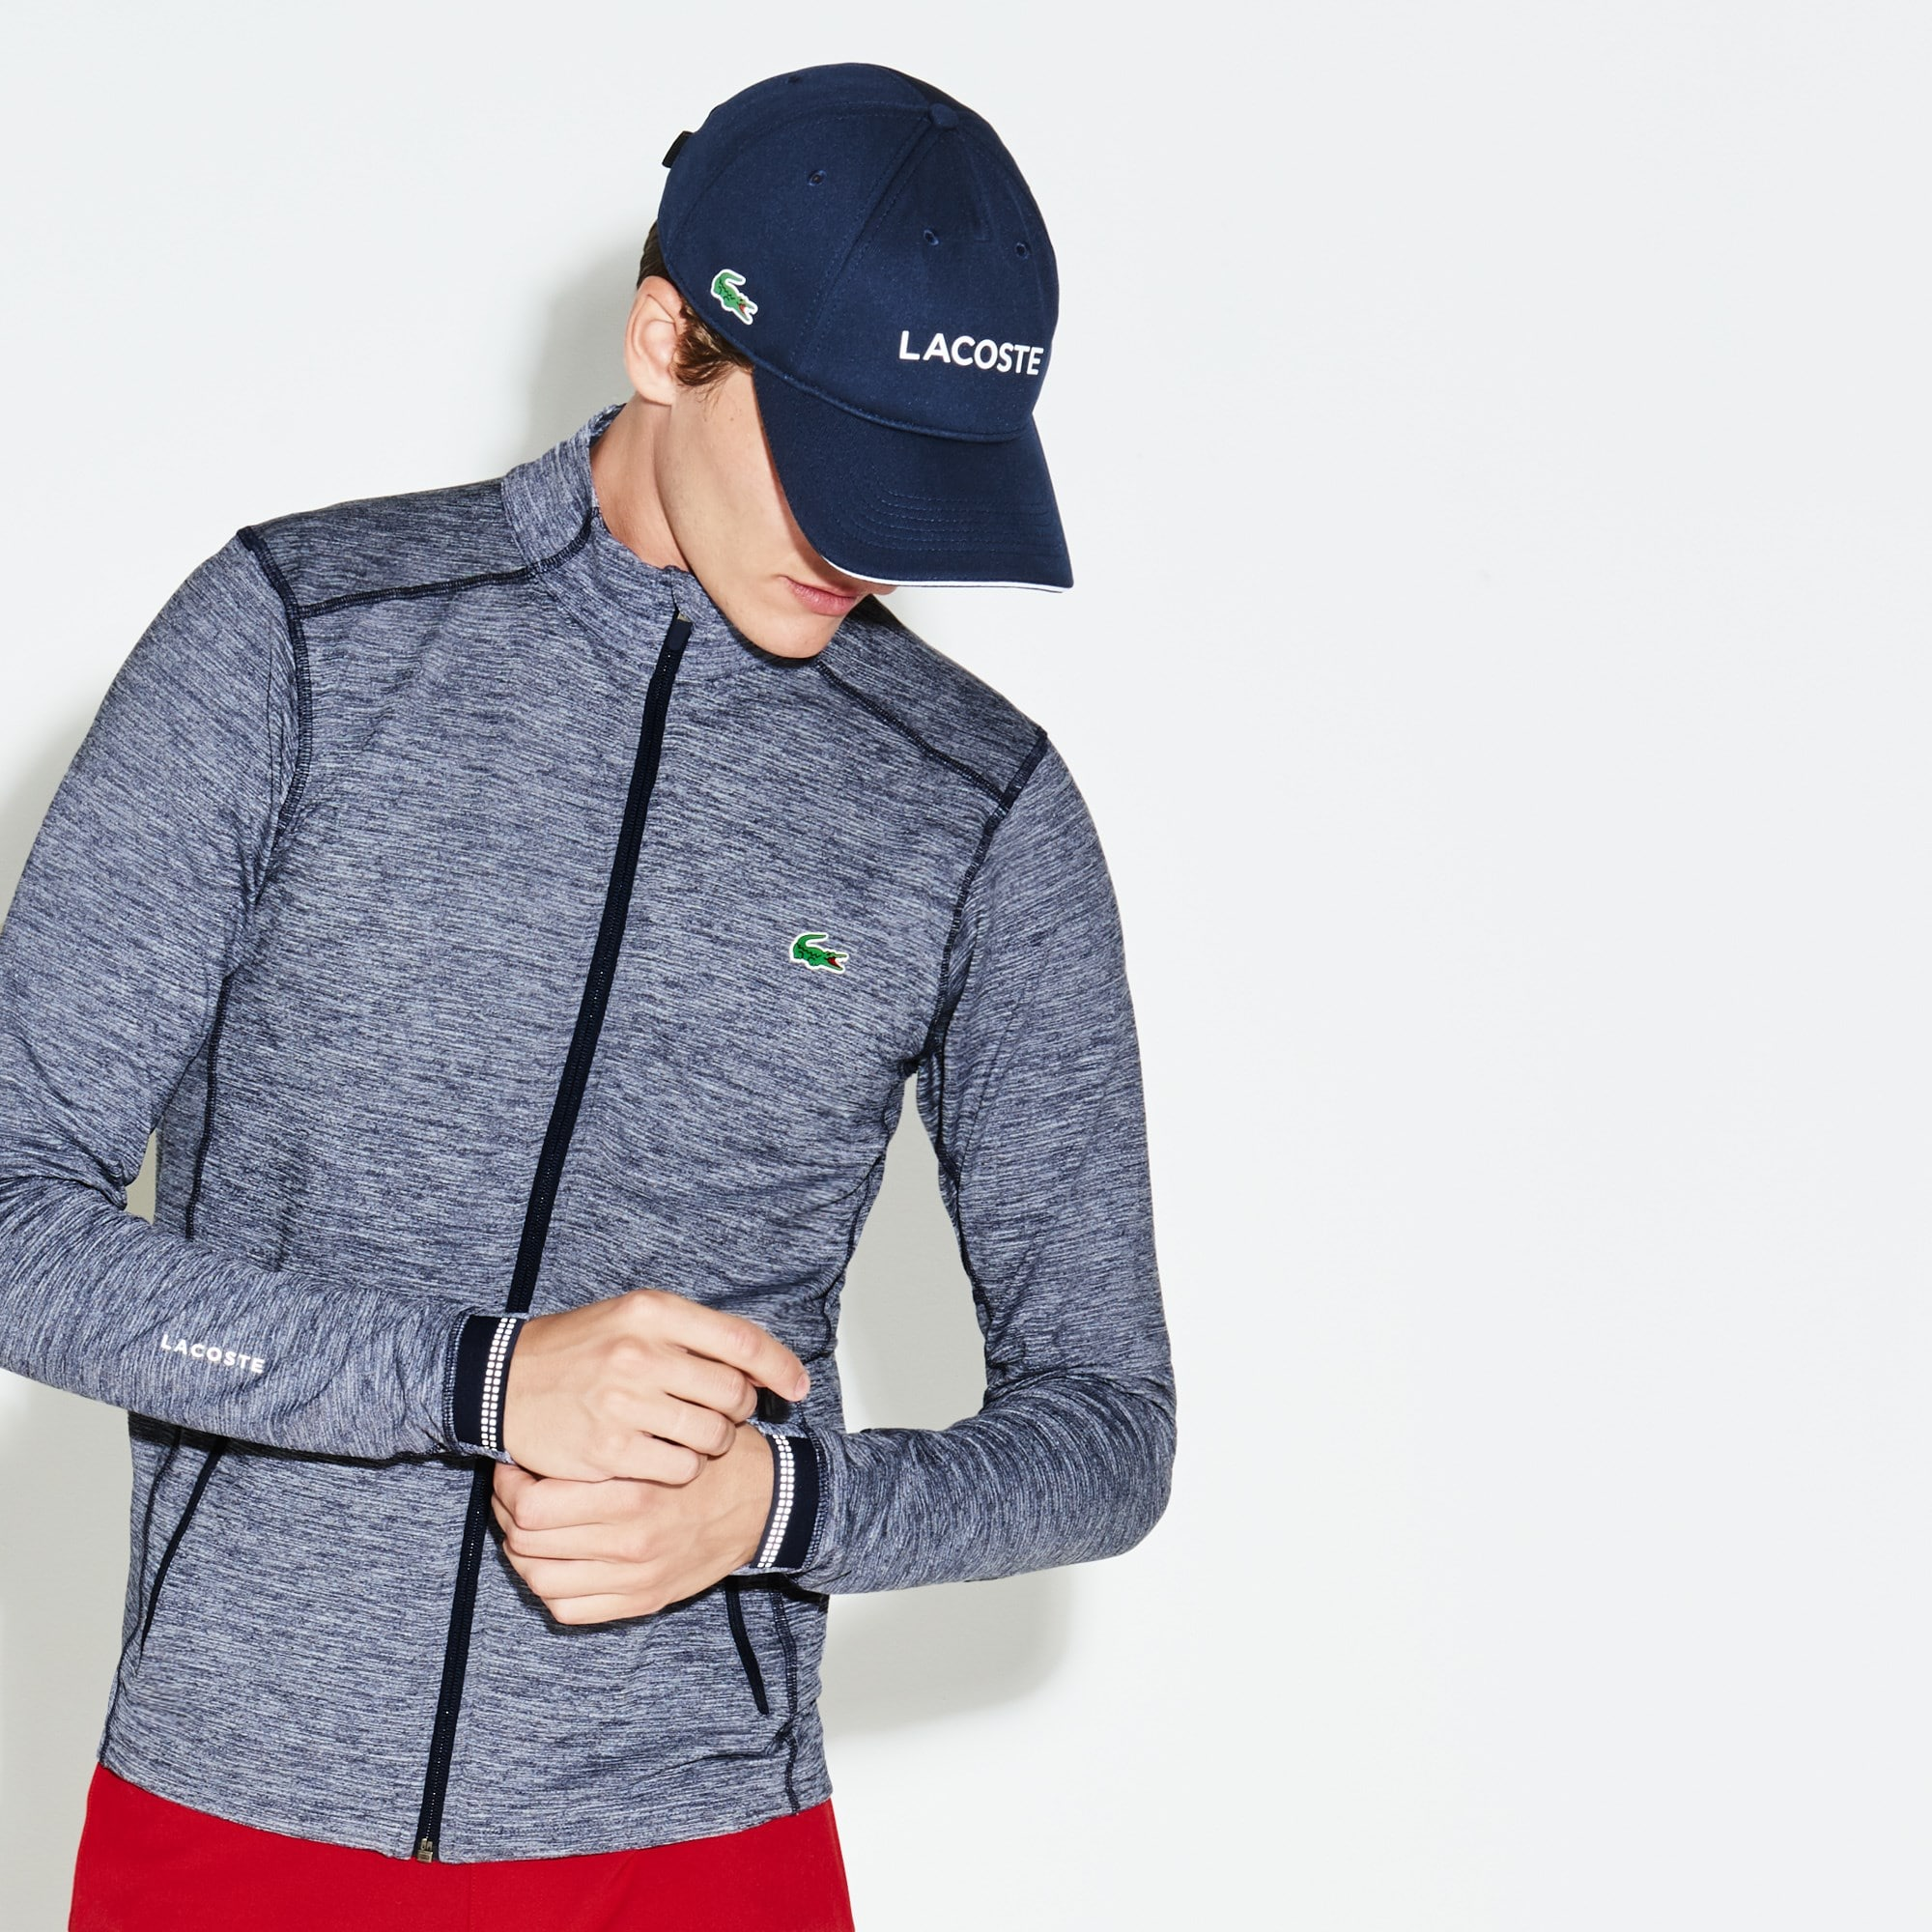 Men's Lacoste SPORT Tech Flamme Midlayer Zip Golf Sweatshirt